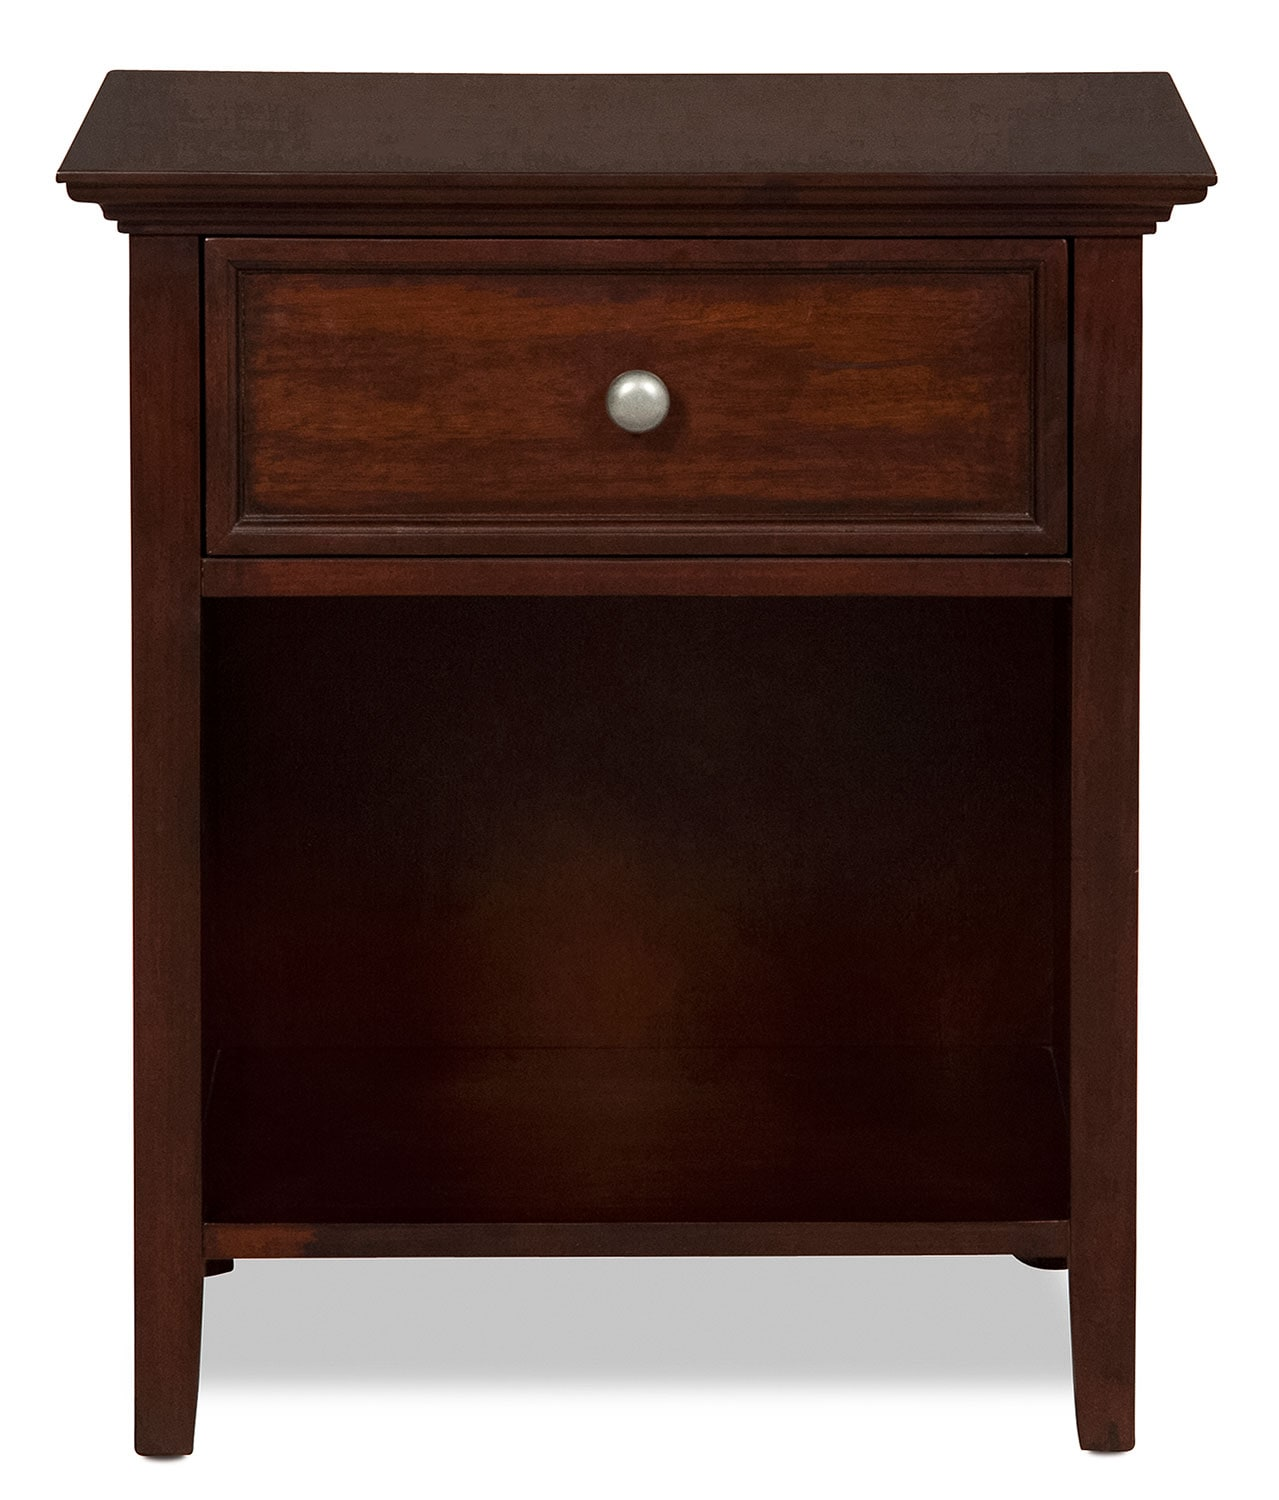 The Ellsworth Collection Cherry Levin Furniture